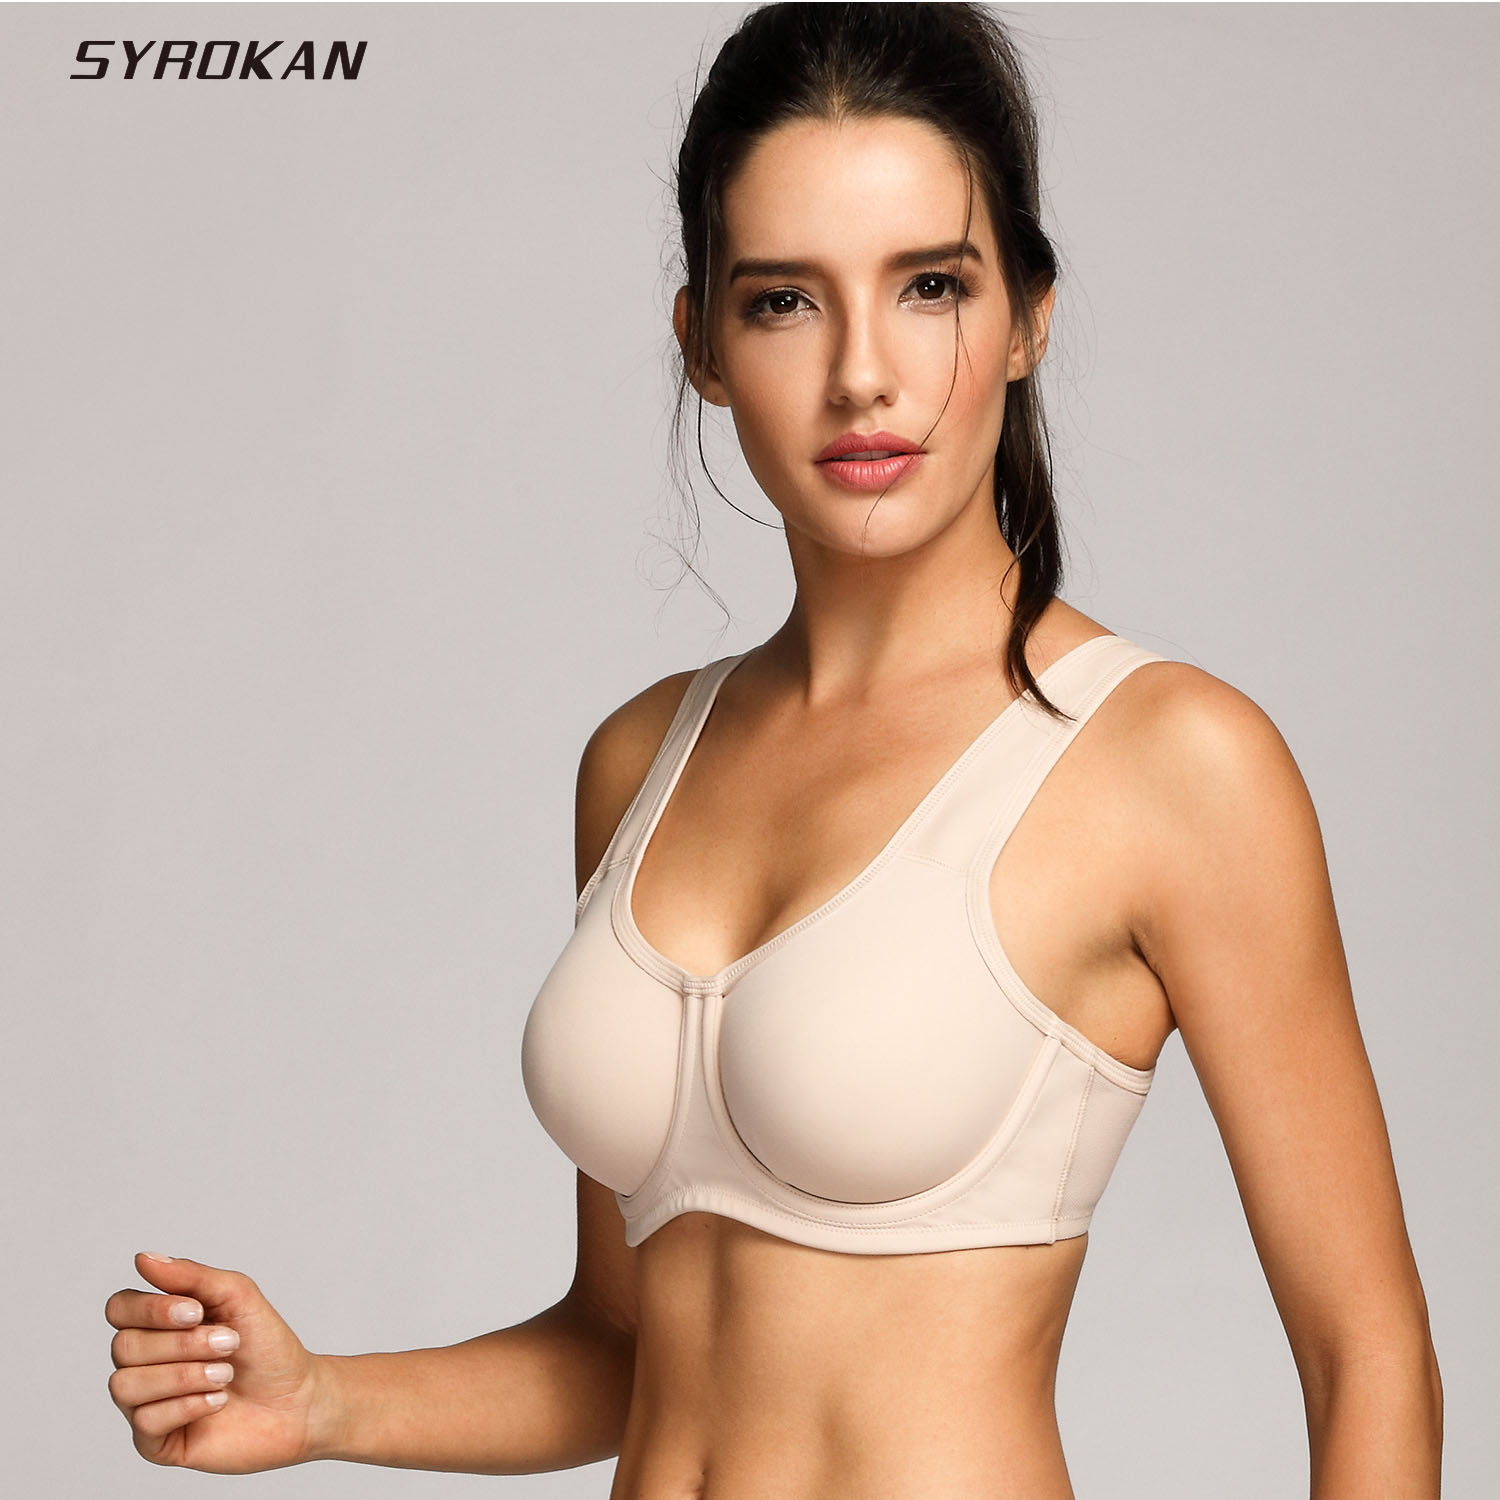 SYROKAN Women's Max Control Solid Plus Size High Impact Underwire Sports Bra leading lady women s plus size underwire padded t shirt bra white 38d